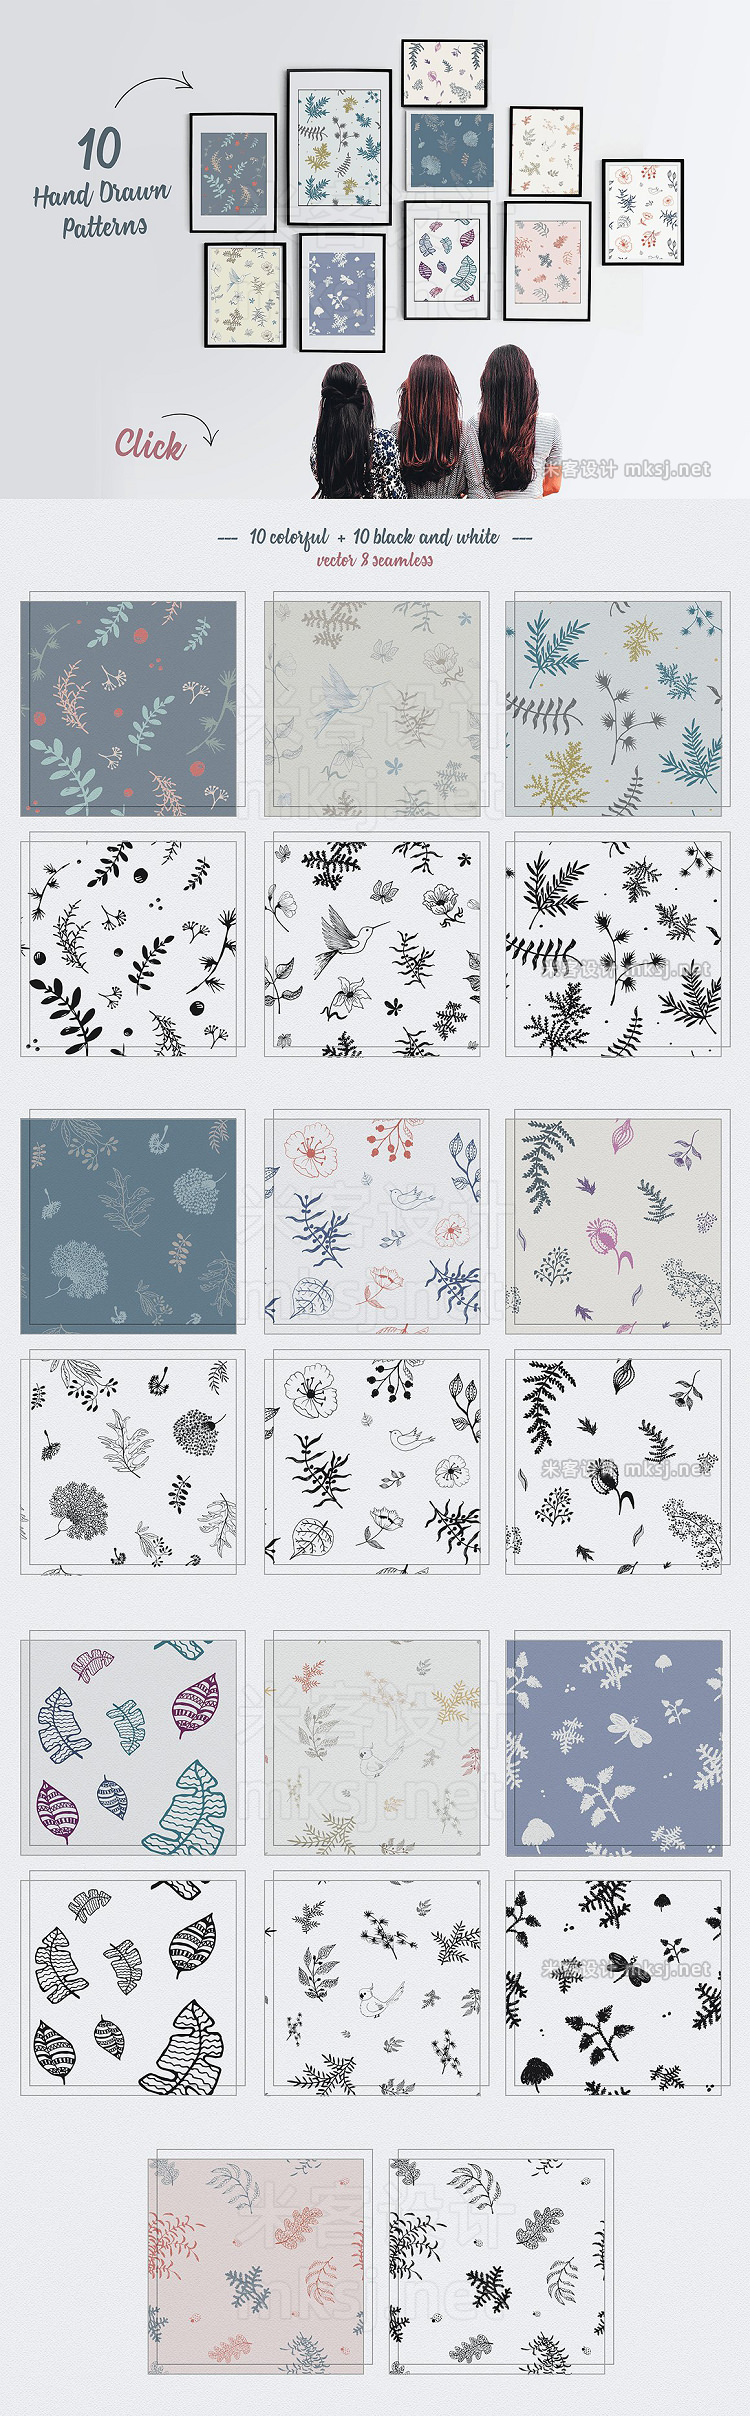 png素材 Floral Elements and Patterns